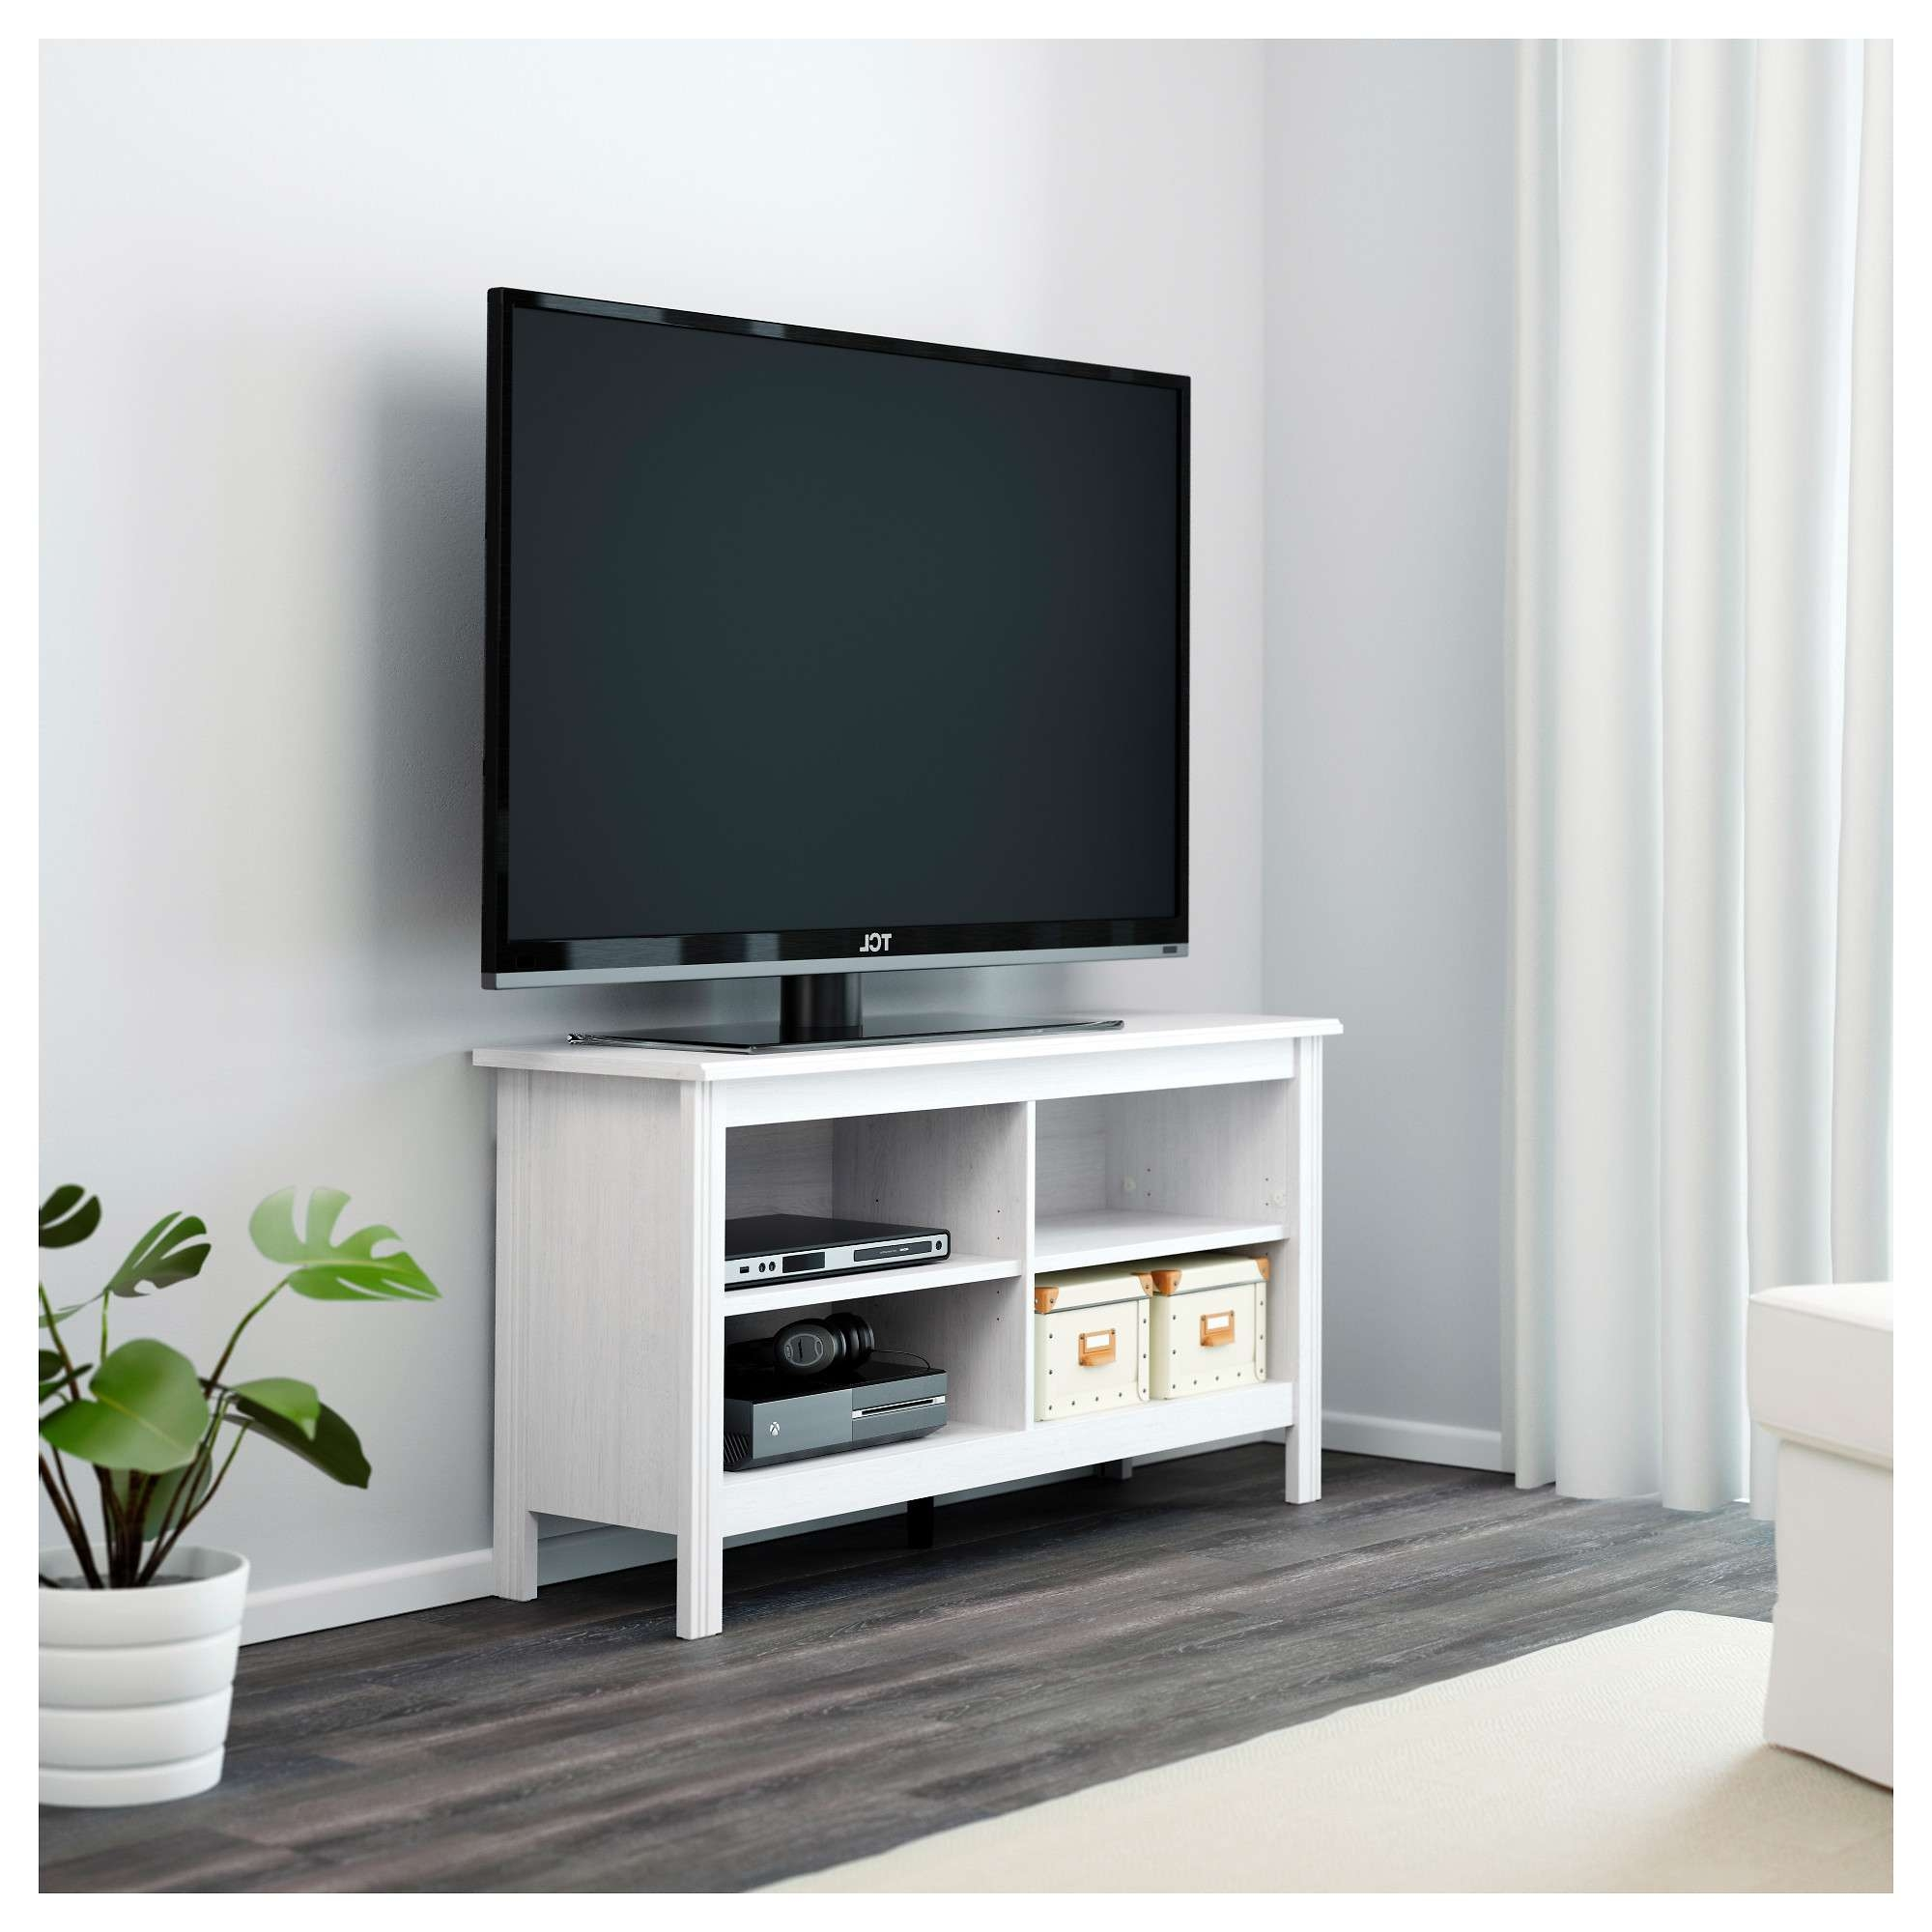 Ikea Tv Stan ~ Theshaggsonline Within Tv Stands At Ikea (View 8 of 15)